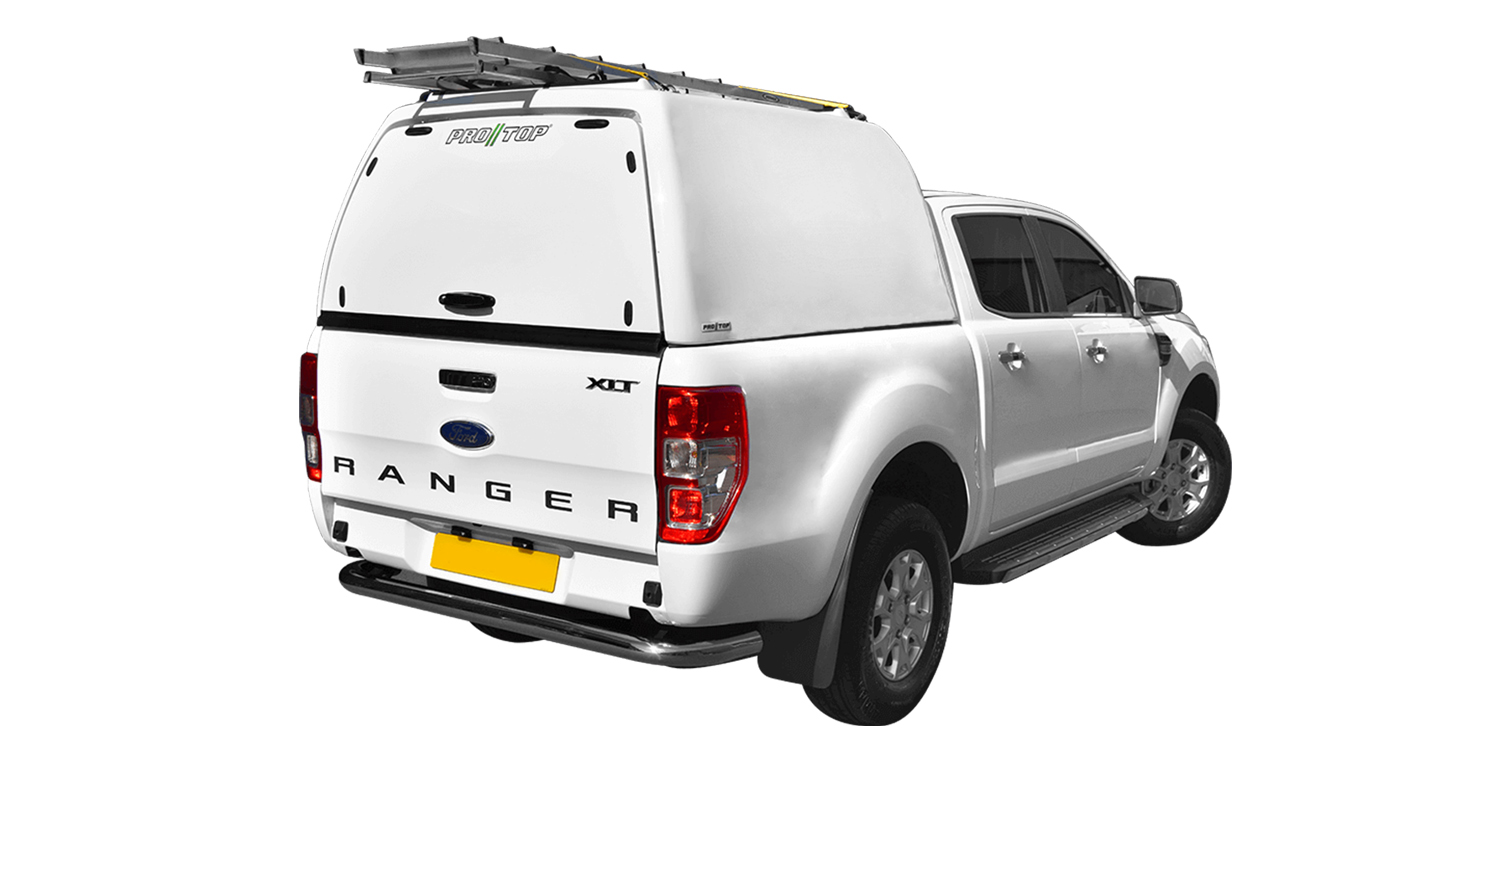 Pro//Top High roof tradesman on a Ford Ranger